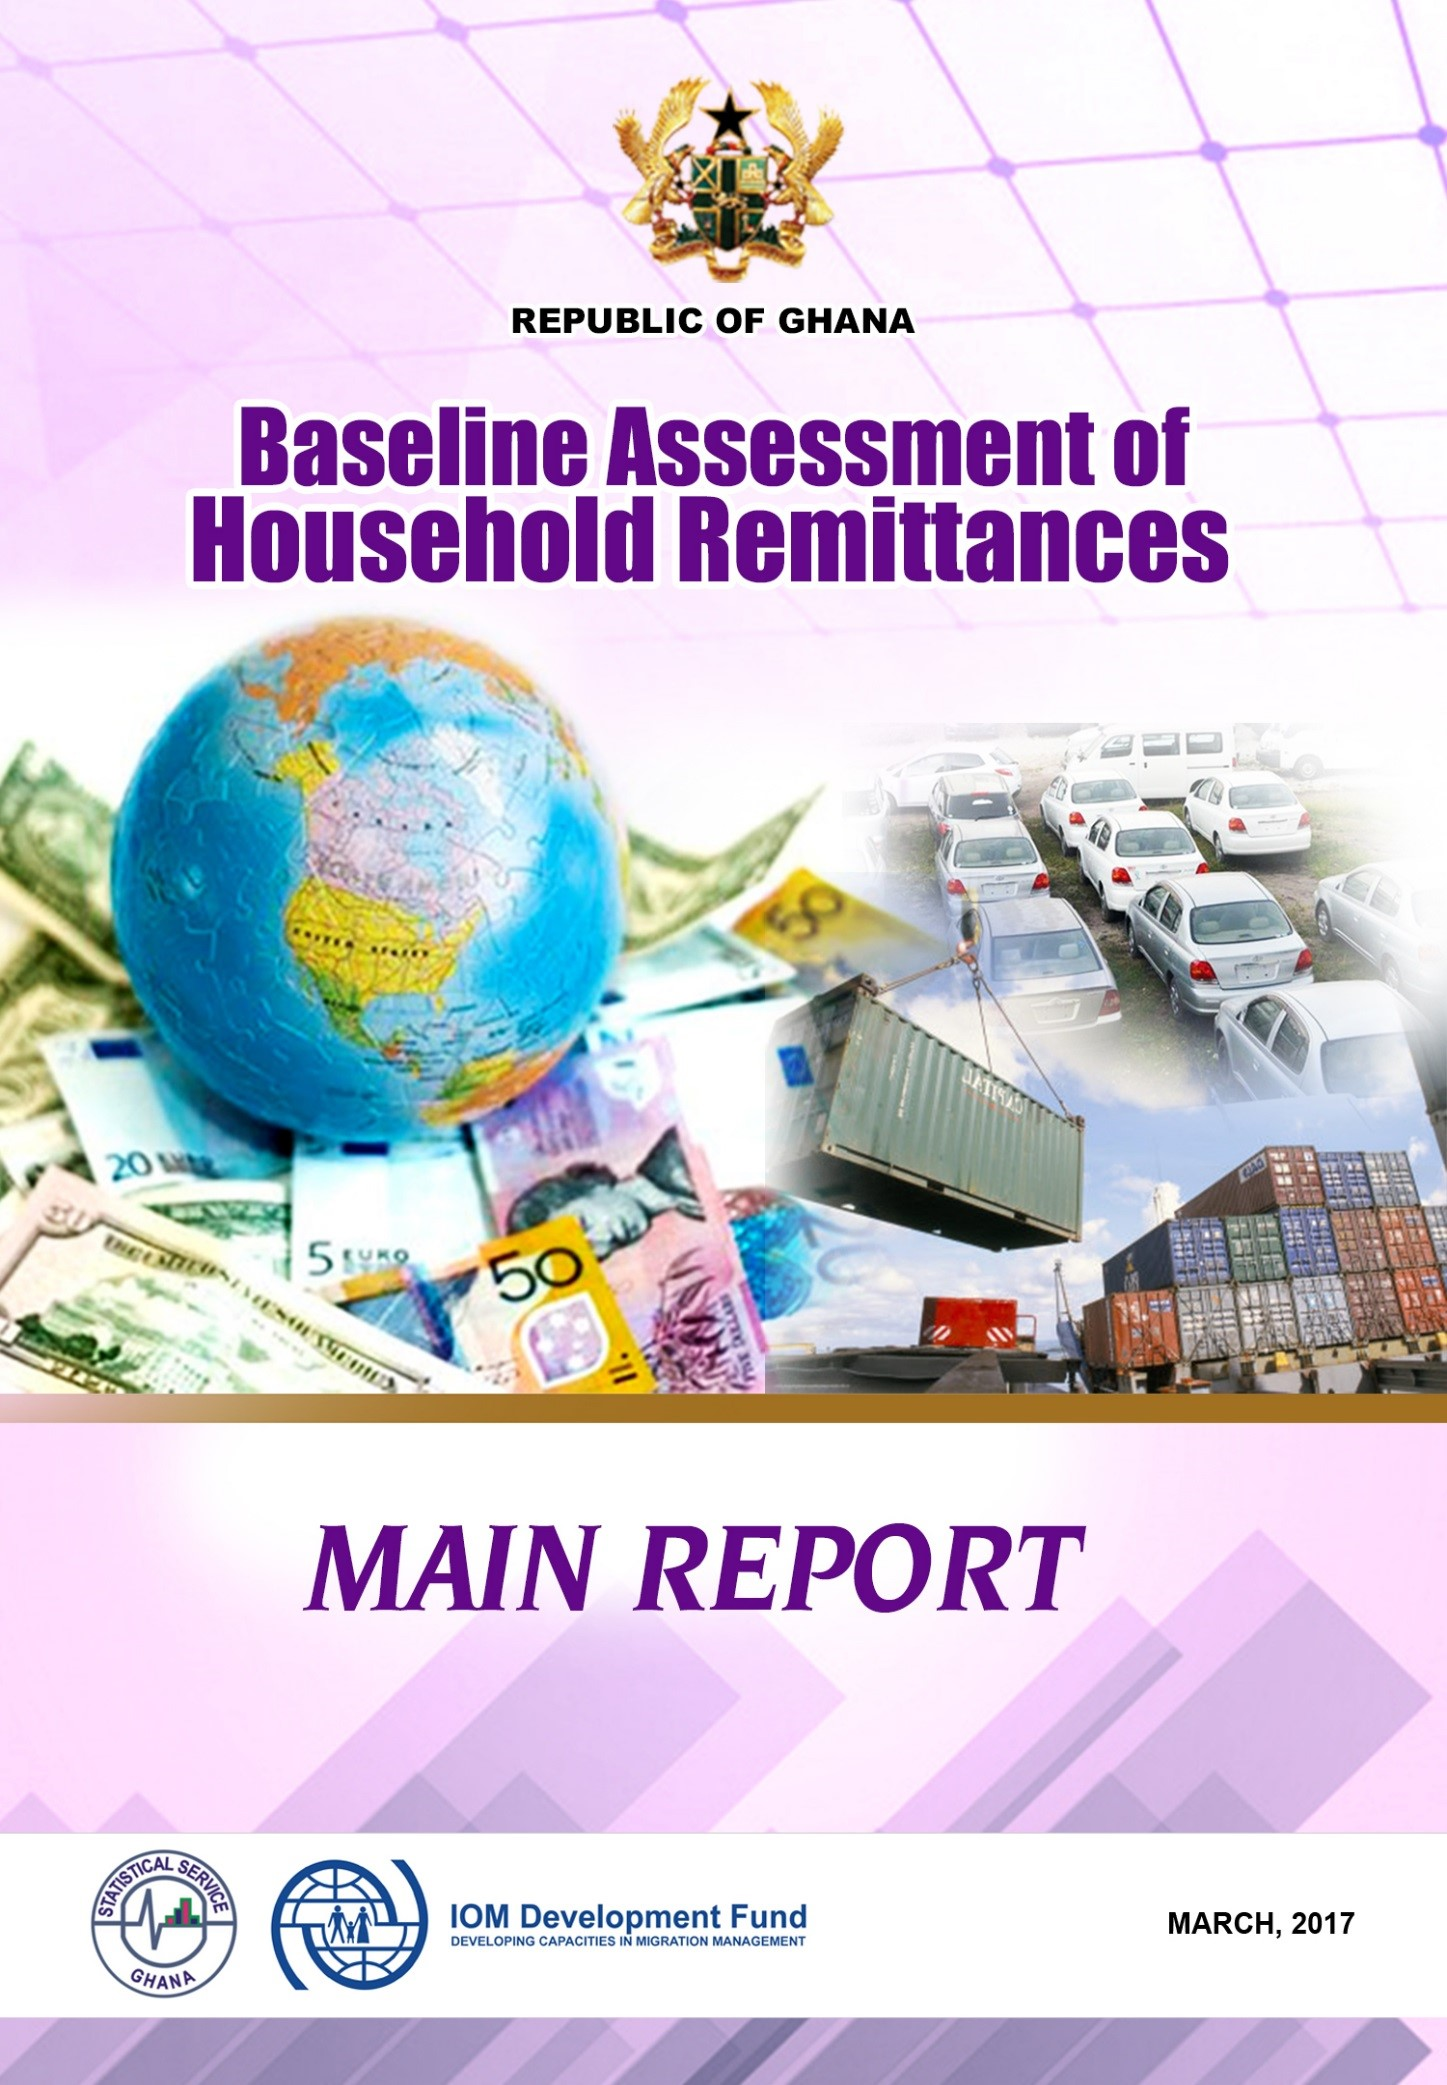 IOM Study in Ghana Finds Remittances Nearly Doubled